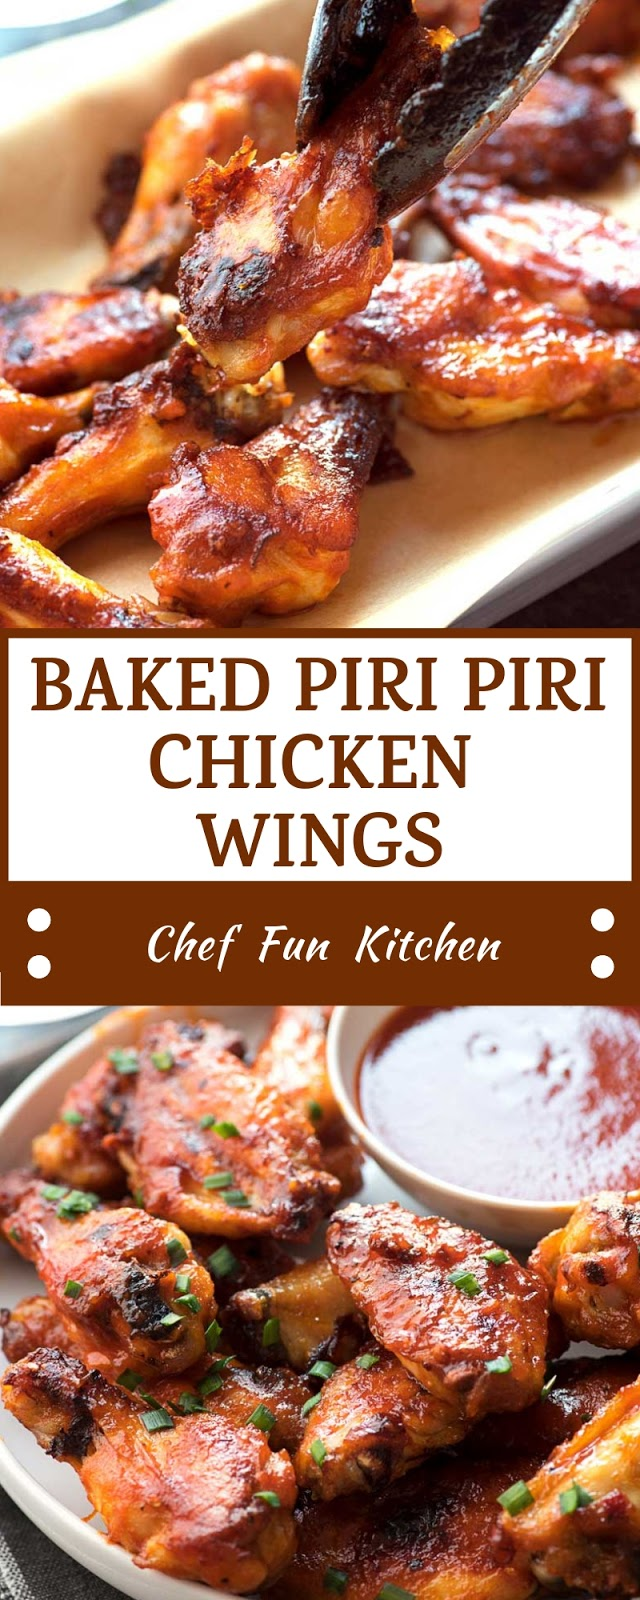 BAKED PIRI PIRI CHICKEN WINGS